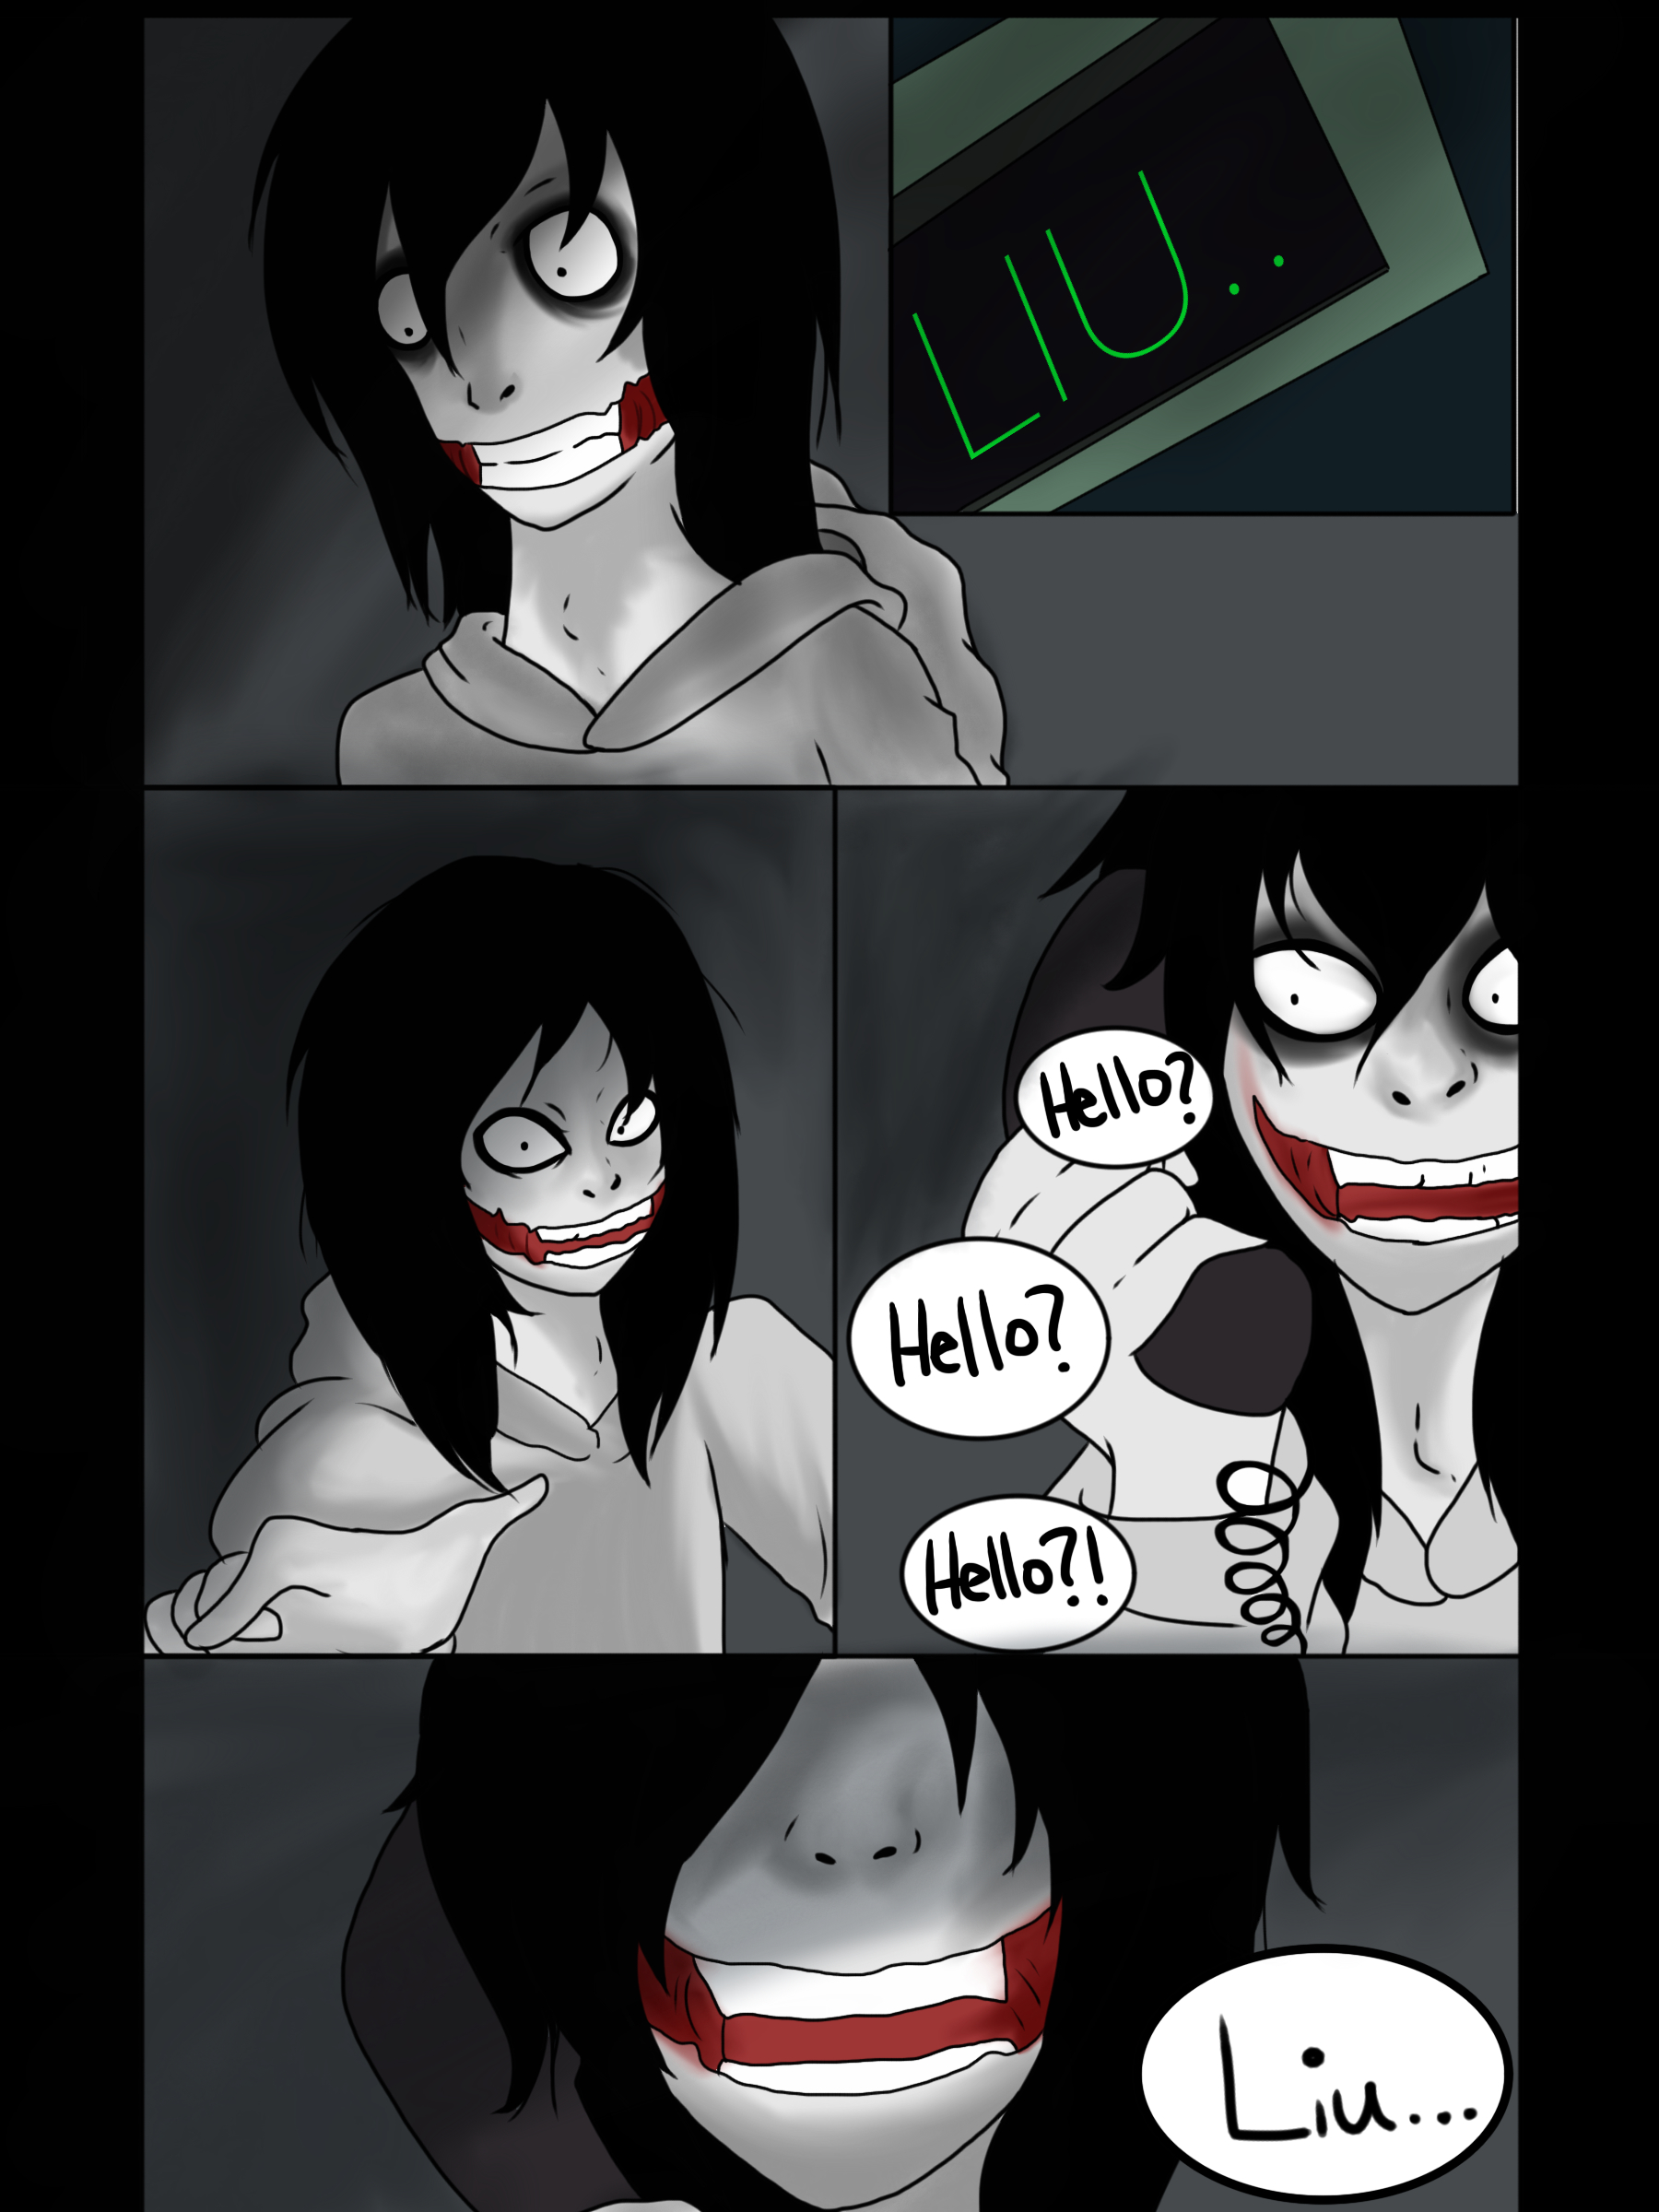 Jeff vs Jane The Killer page 26 by Helen-RubiTH on DeviantArt